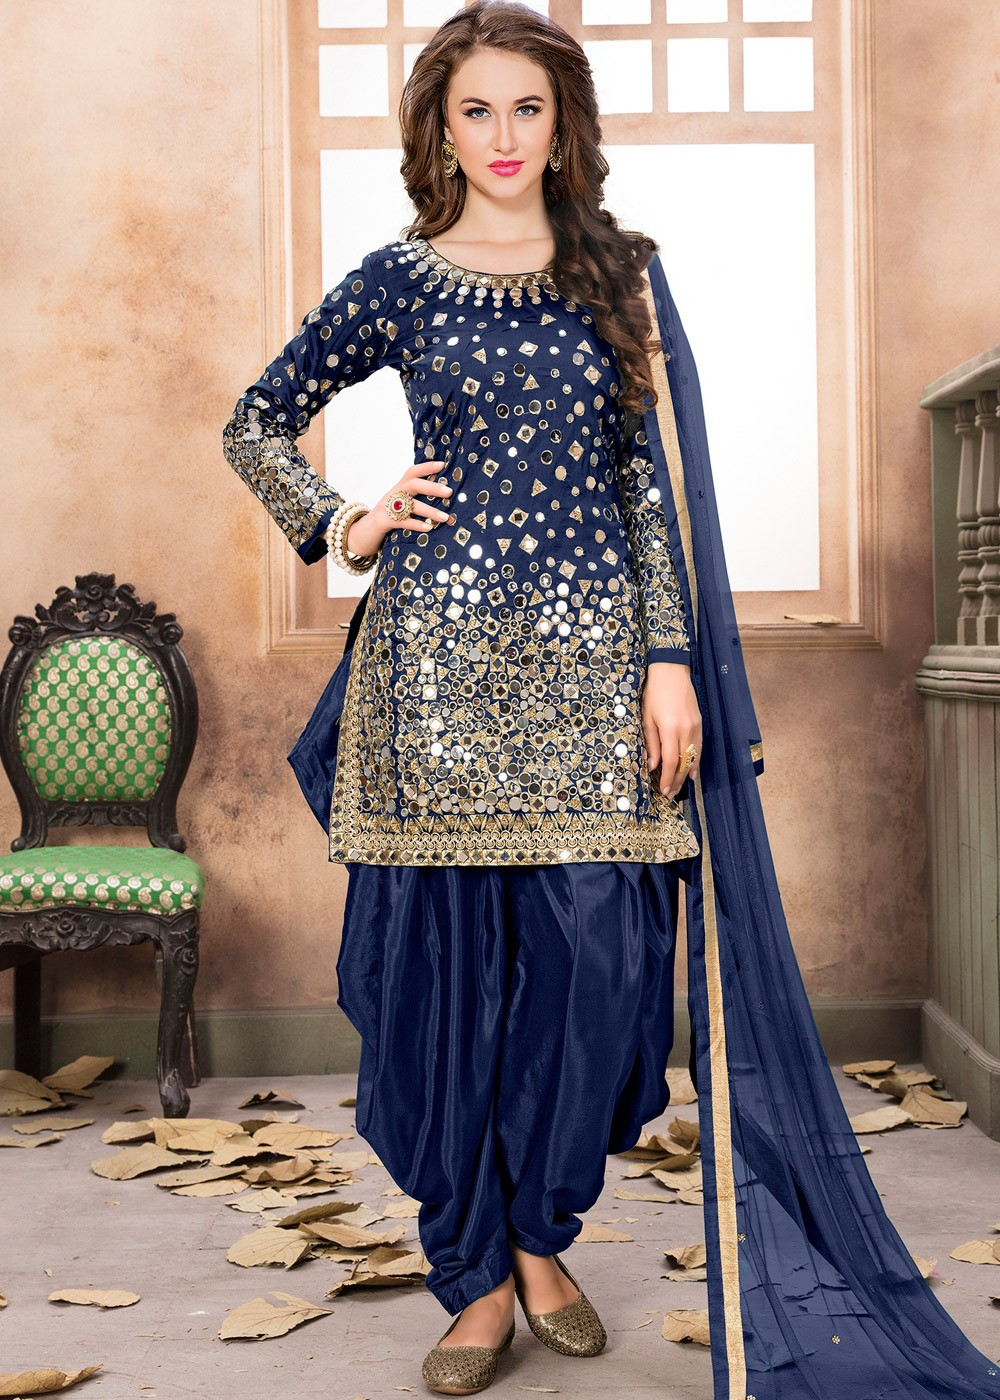 75b775185b8 Navy Blue Art Silk Punjabi Salwar Suit with Dupatta Most Loved ...